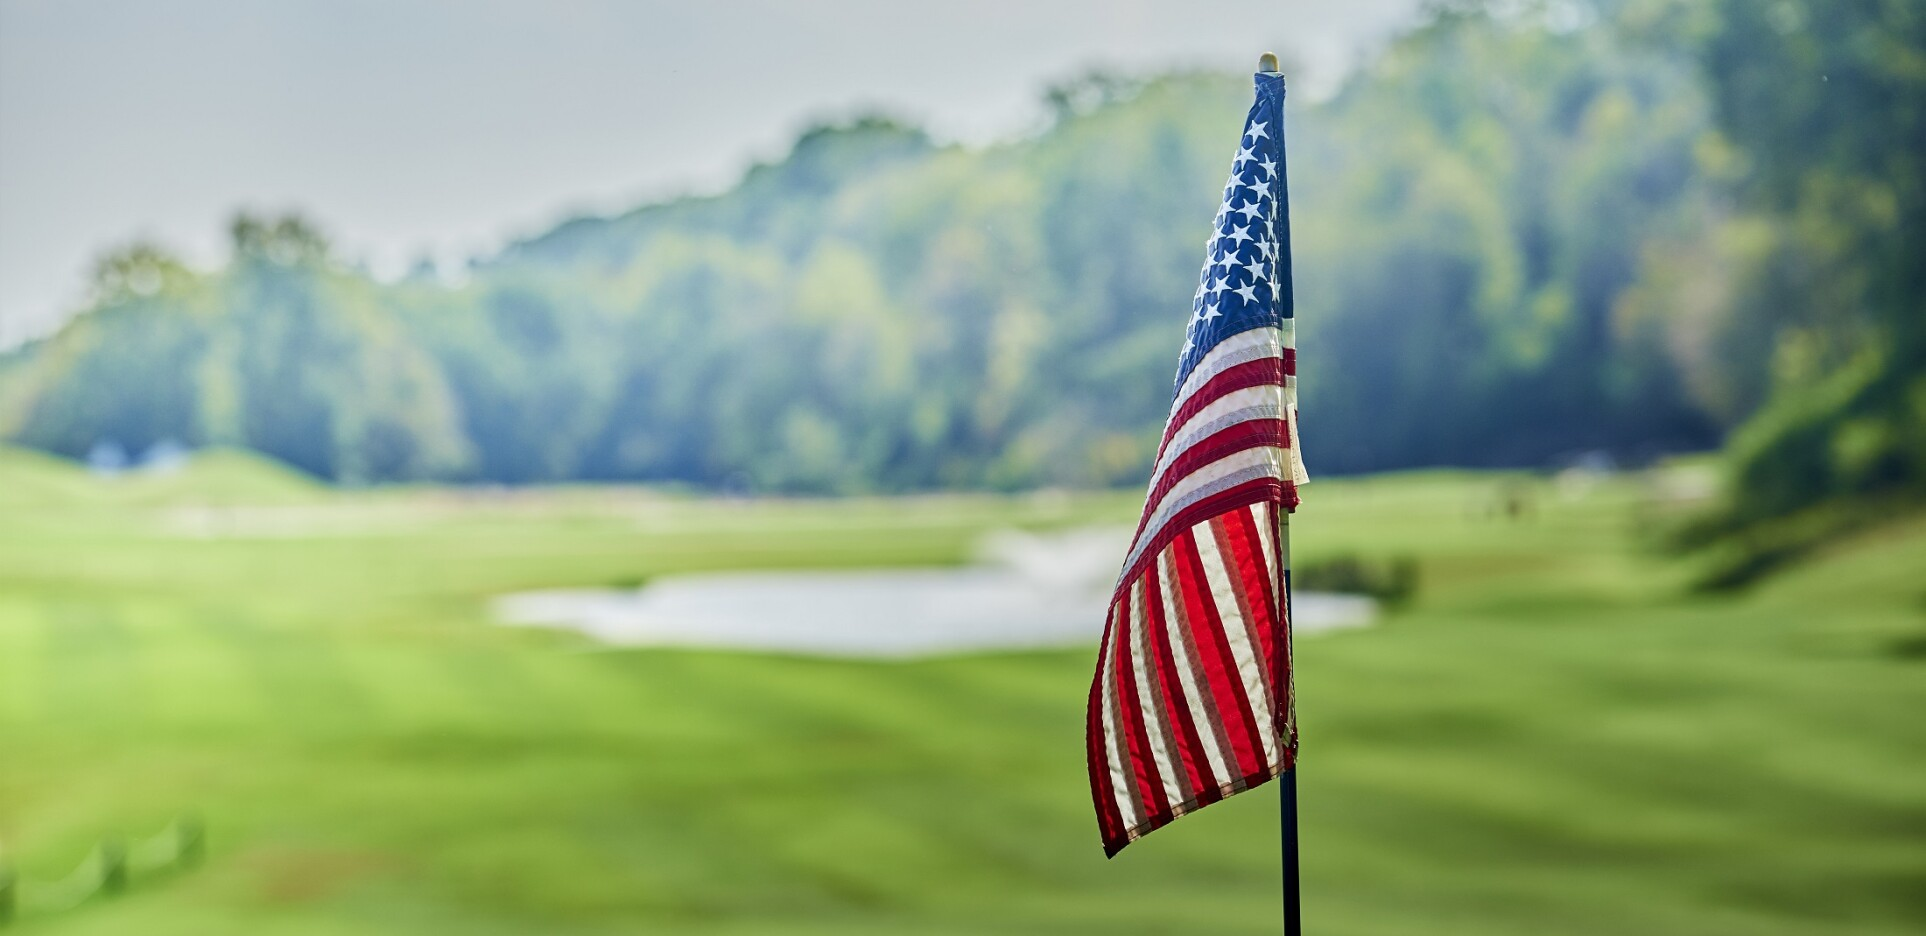 American flag for Military Appreciation at the golf course